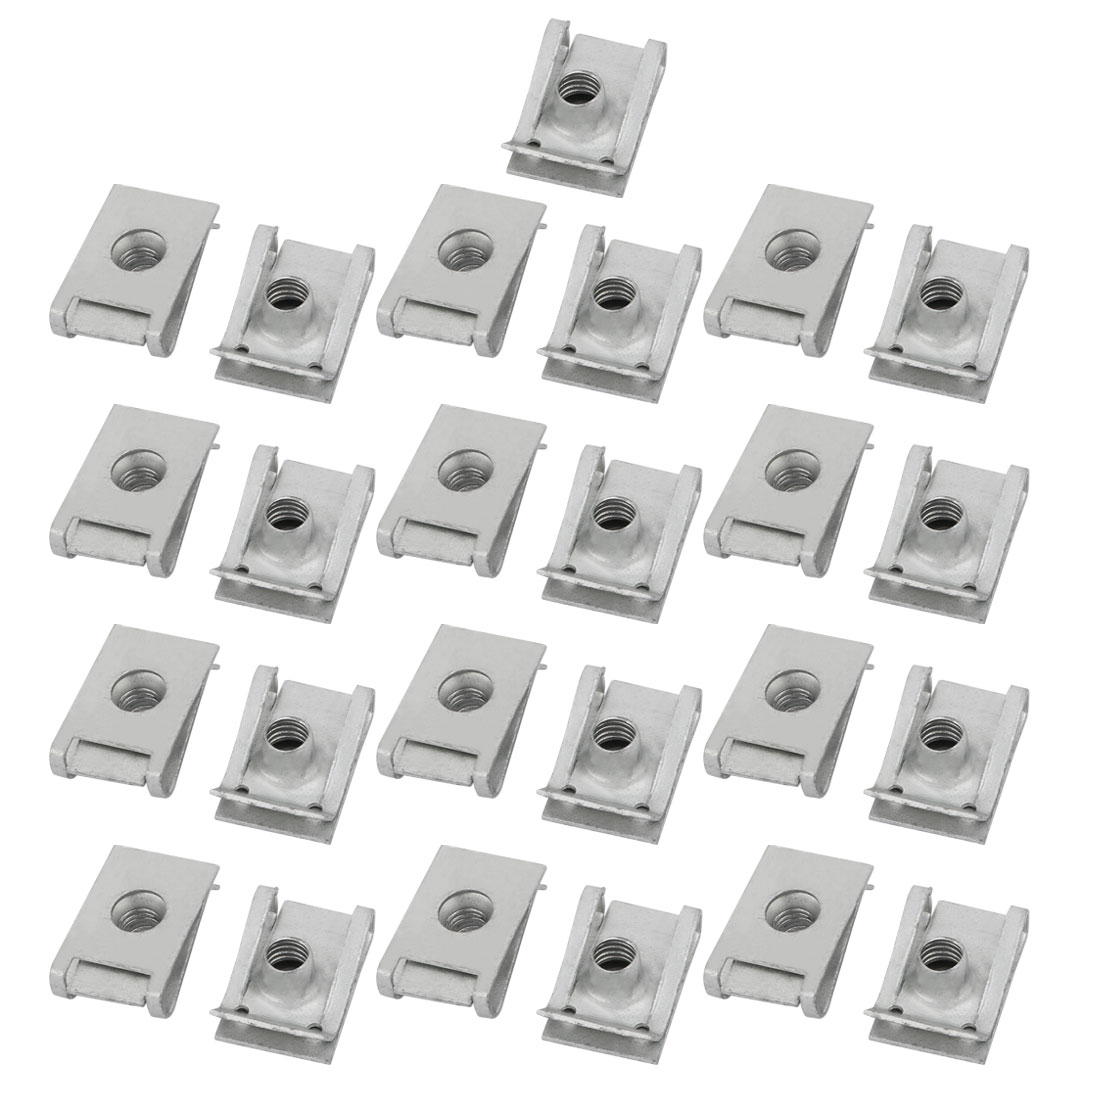 M6 24mmx16mm 65Mn Spring Steel White Zinc Plated Extruded U Nut Clip 25pcs - image 1 of 1